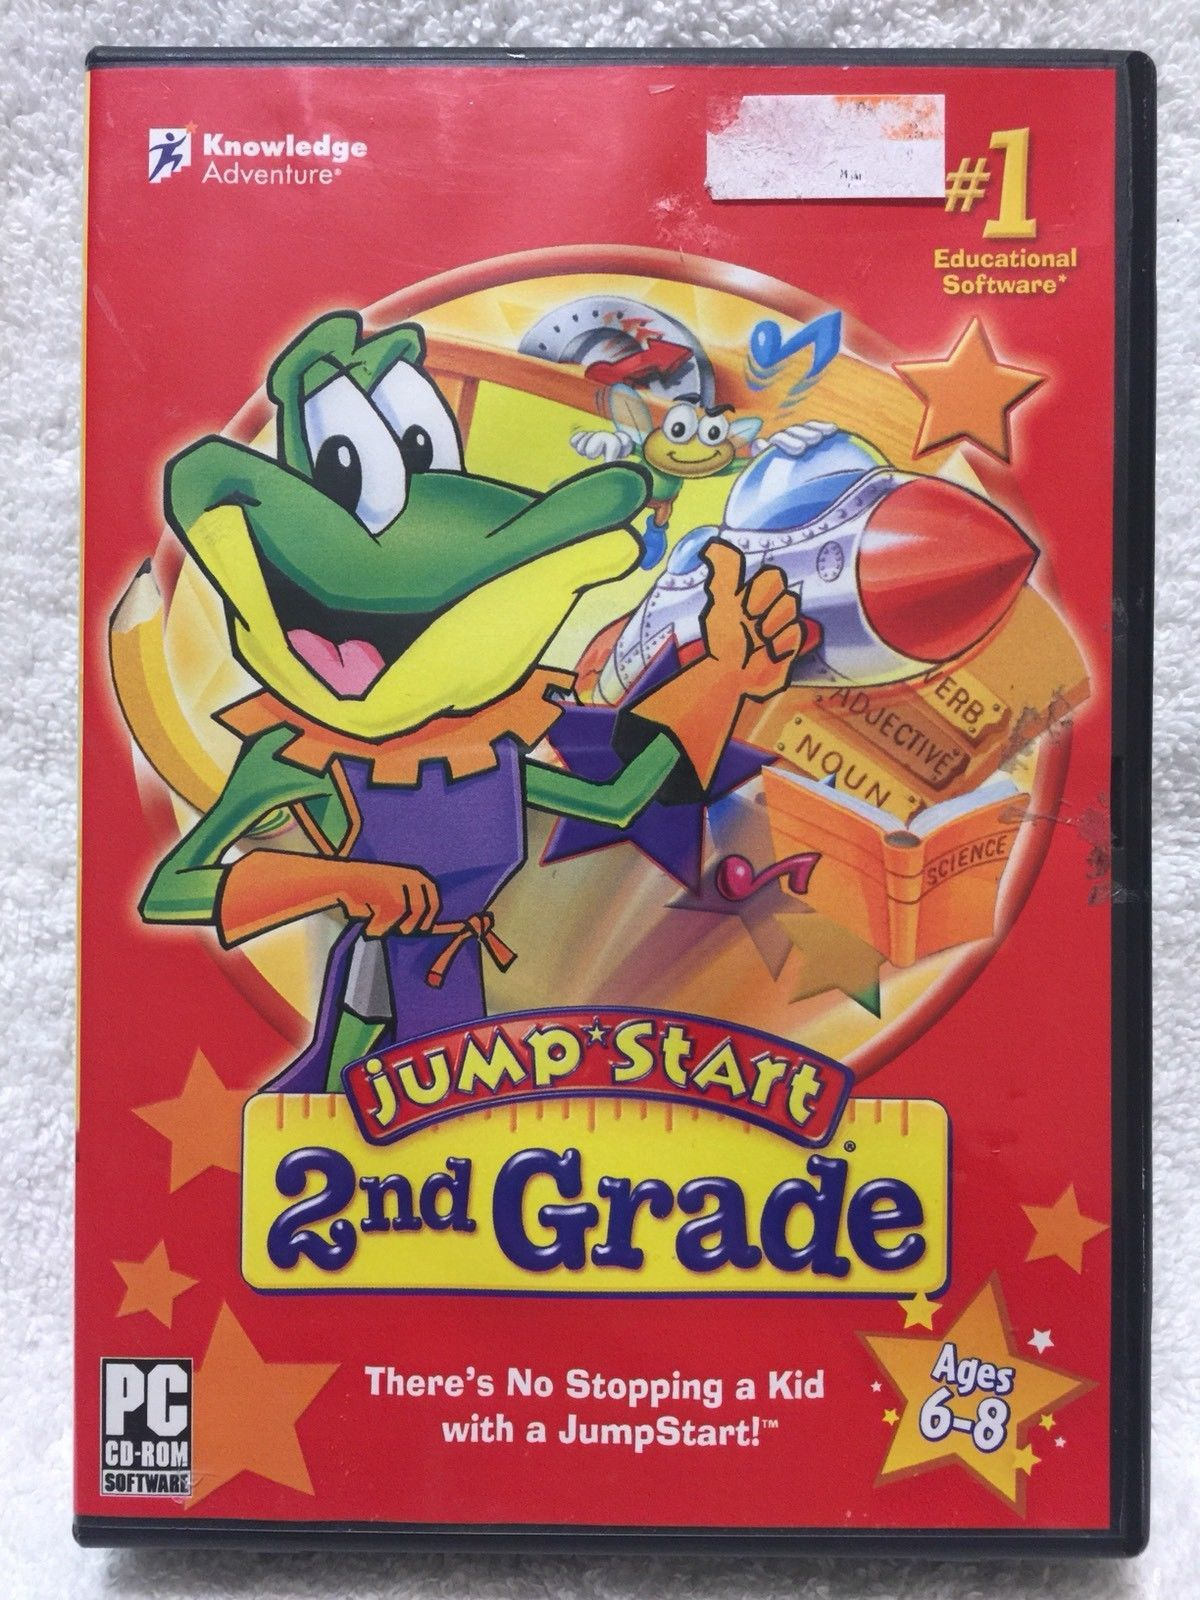 Jumpstart 2nd grade for pc mac social and 50 similar items jumpstart 2nd grade for pc mac social science geography jump start second m4hsunfo